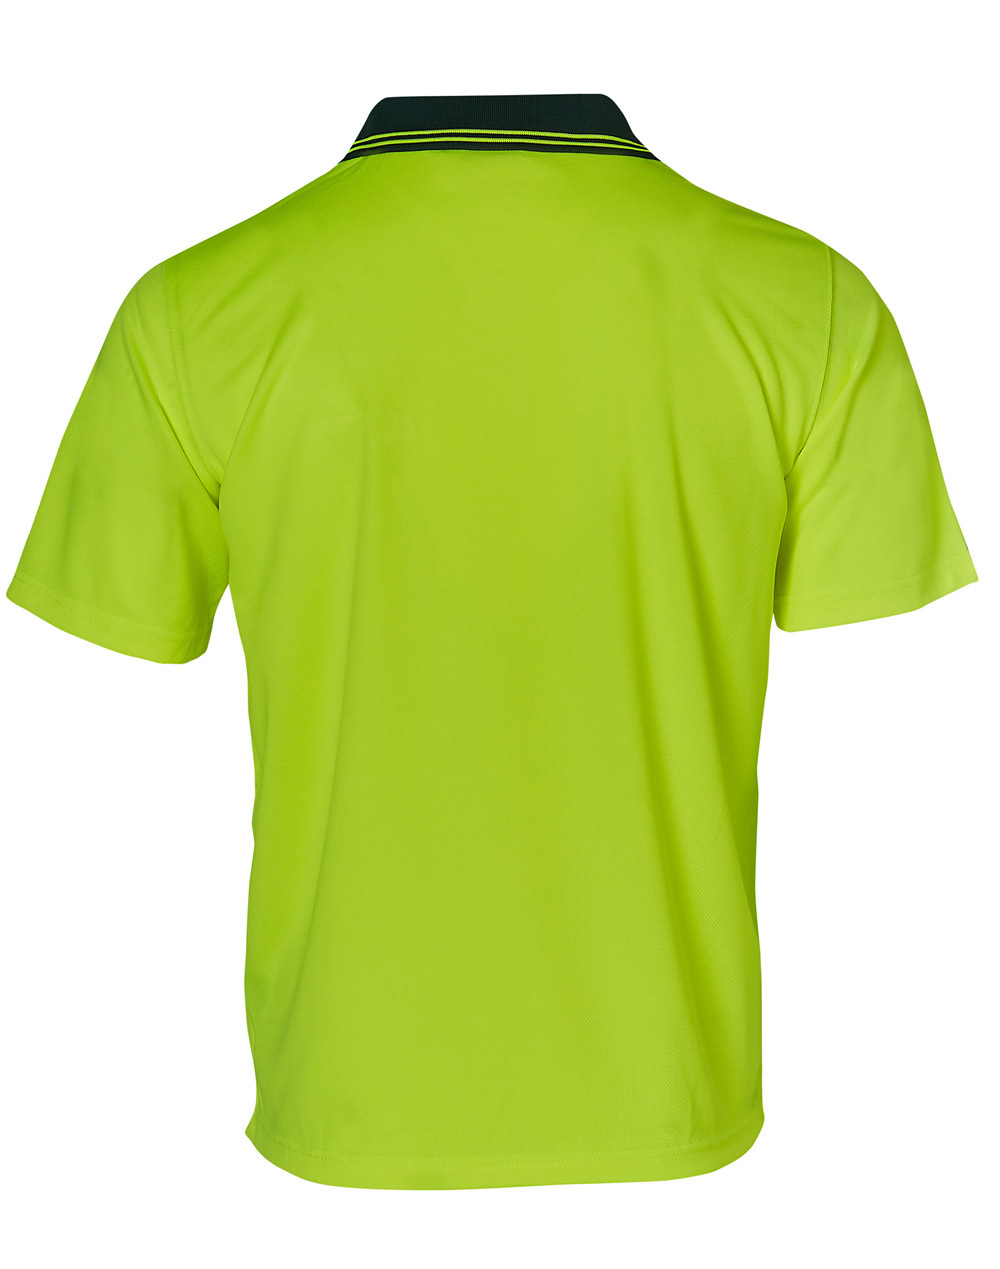 https://s3-ap-southeast-1.amazonaws.com/ws-imgs/WORKWEAR/SW01_YellowBottle_Back.jpg